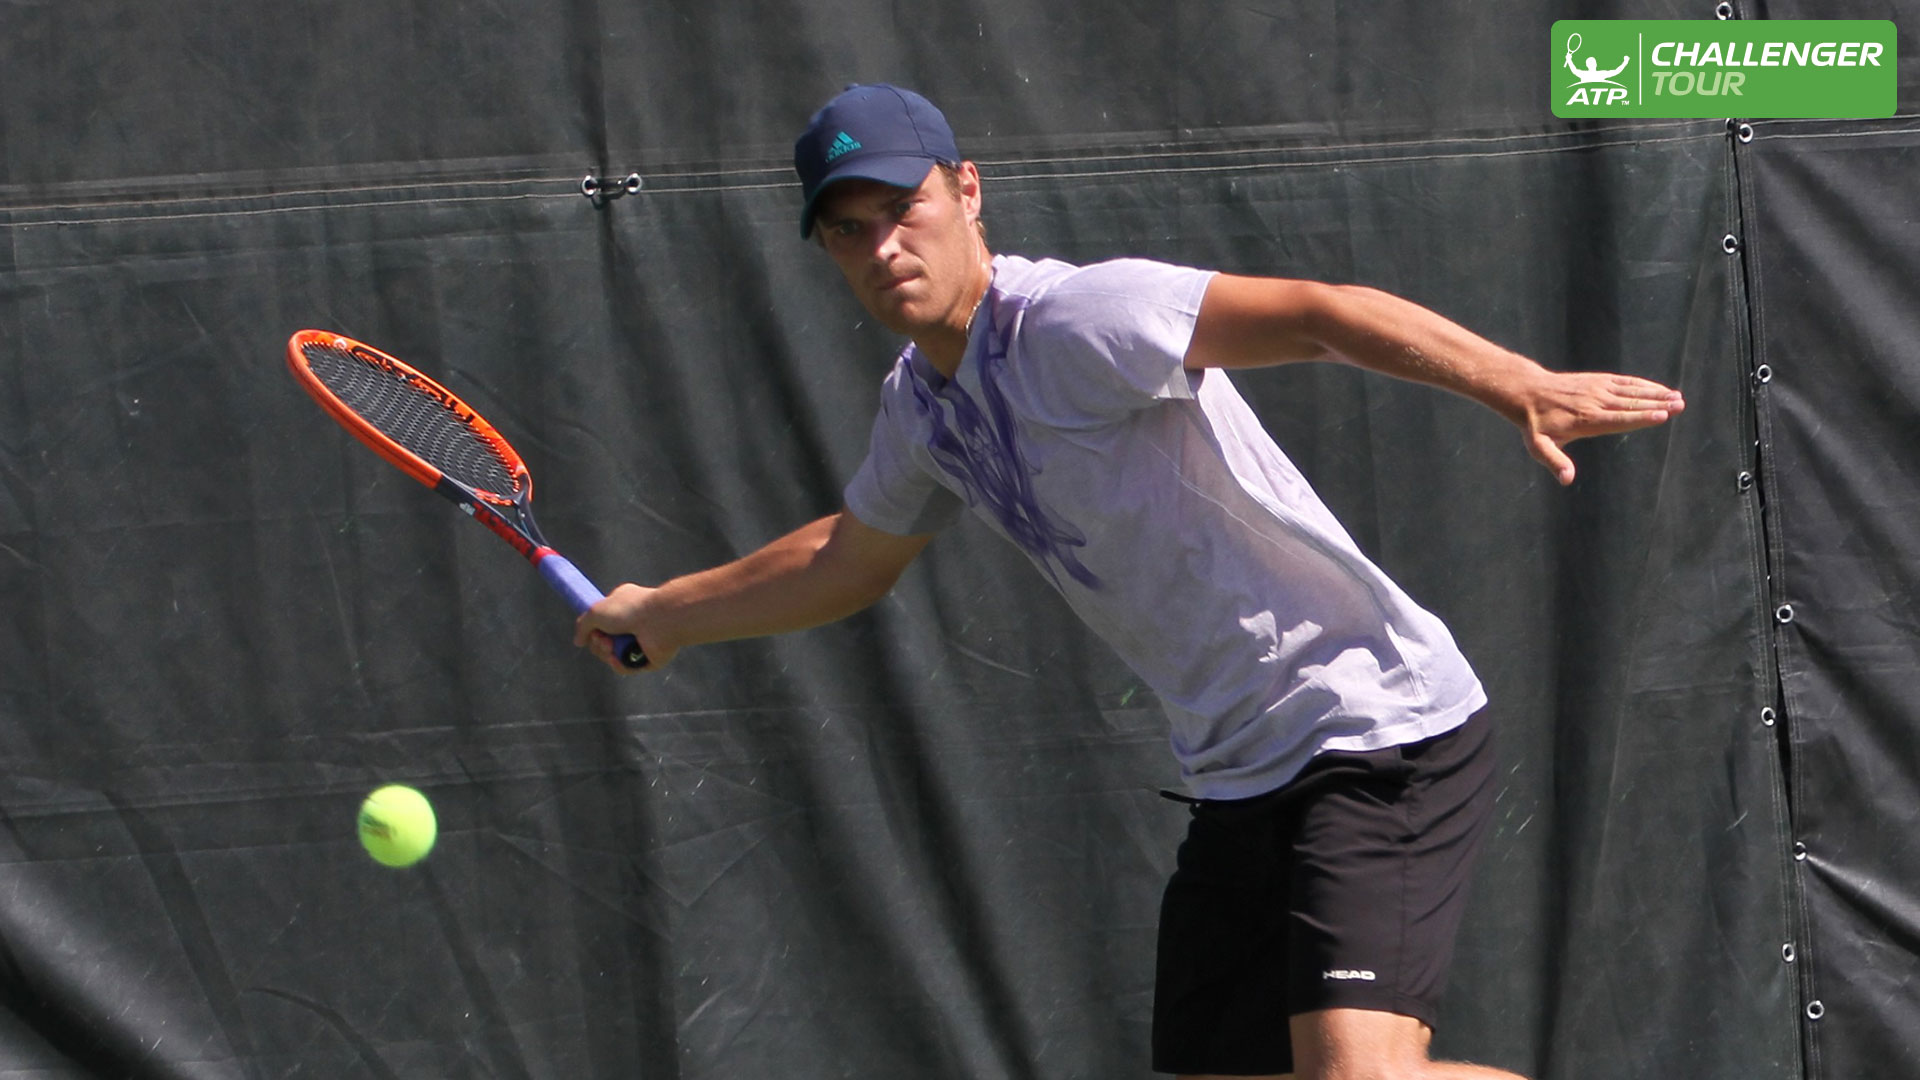 Finn Tearney shocks top seed Quentin Halys at the ATP Challenger Tour event in Gatineau.